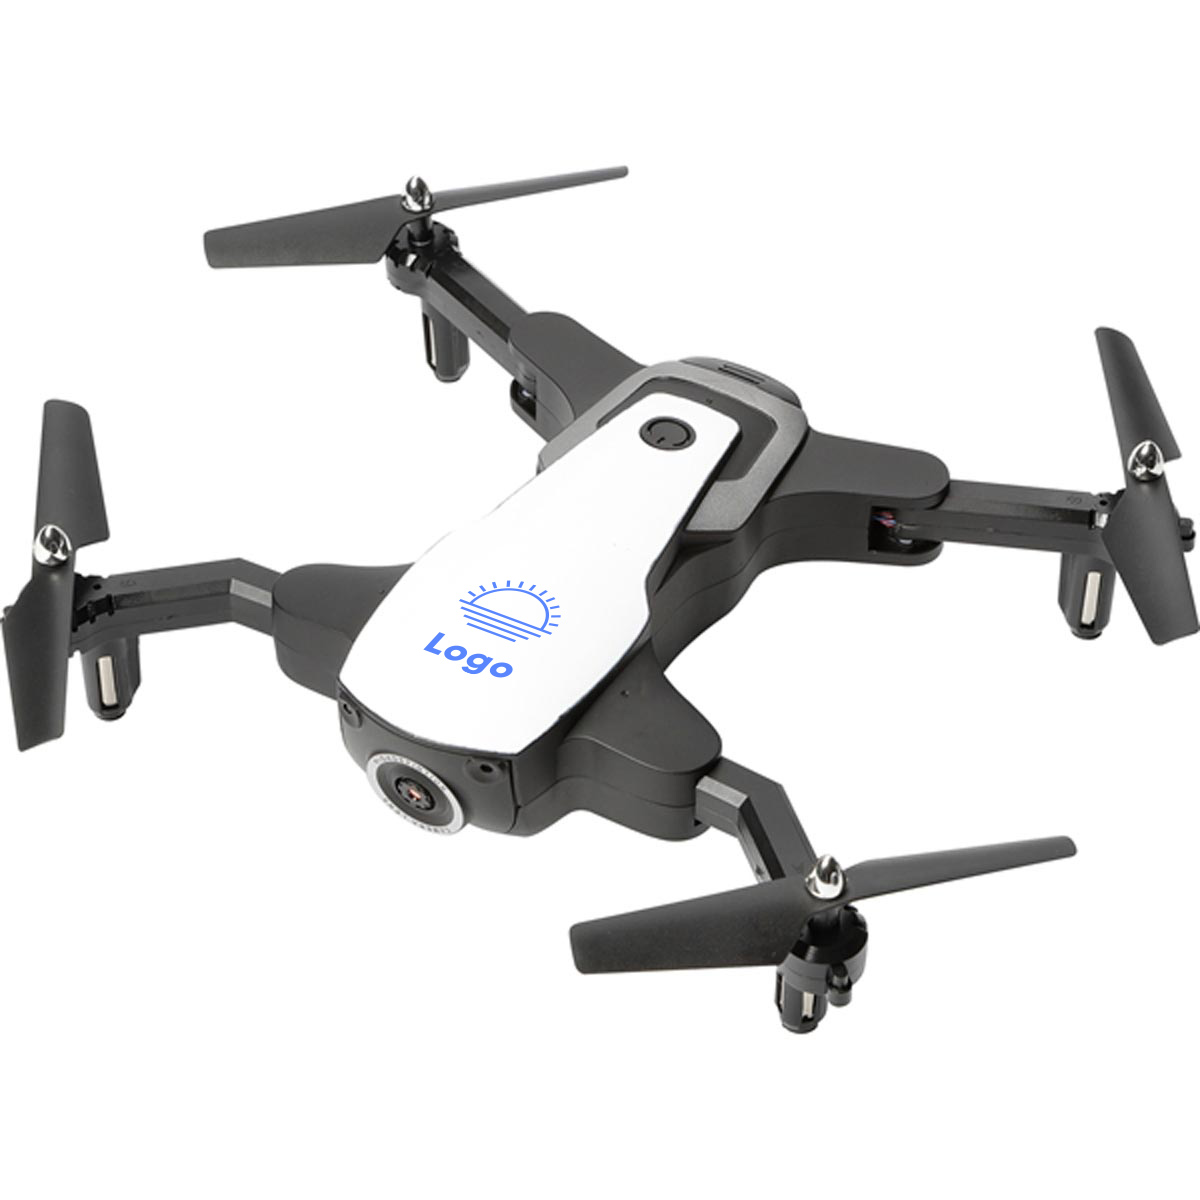 317643 foldable drone one color only one location imprint